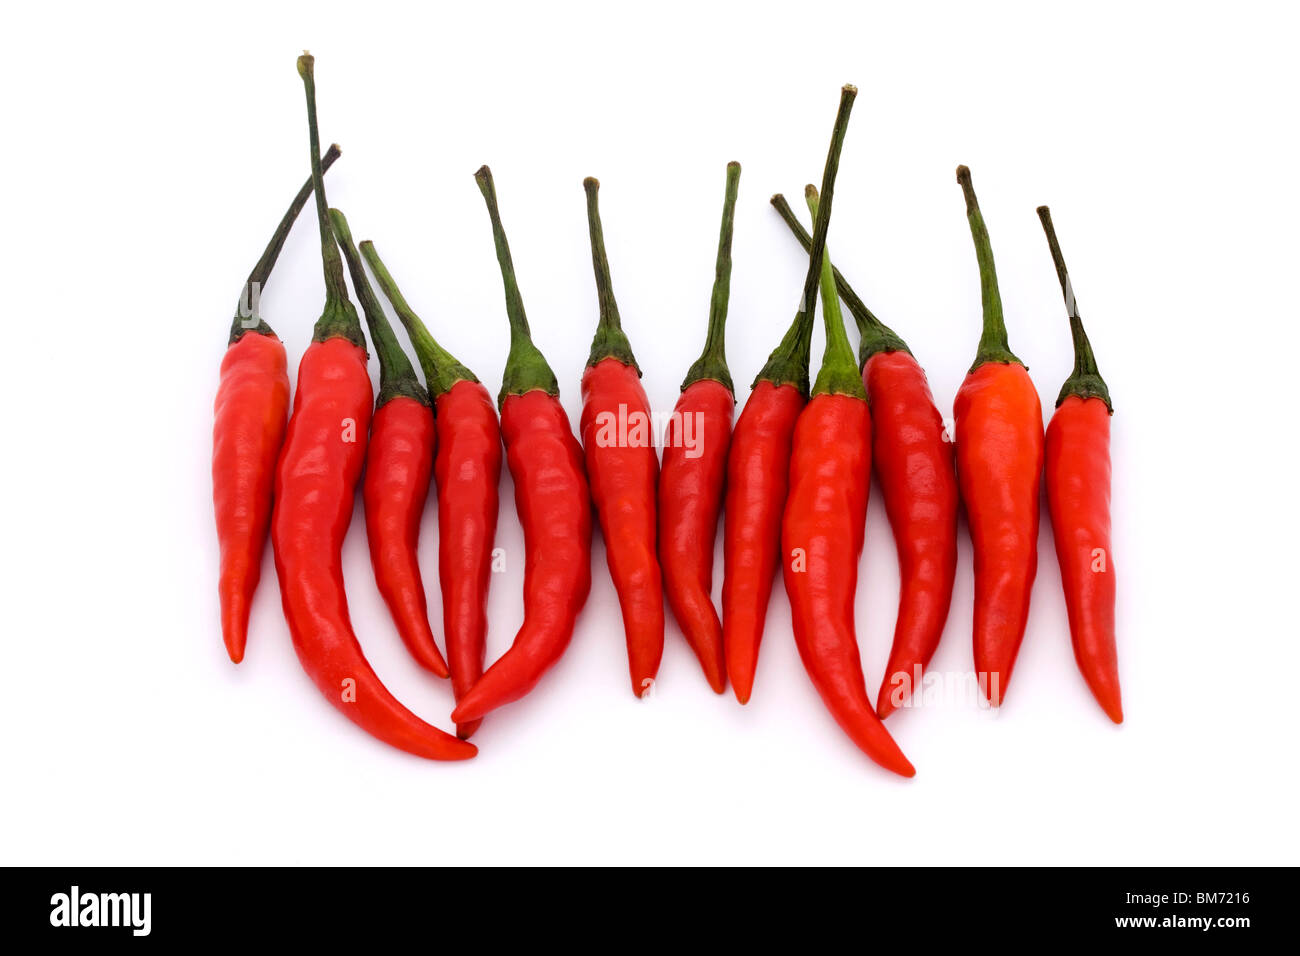 line of birds eye chillies on a white background - Stock Image